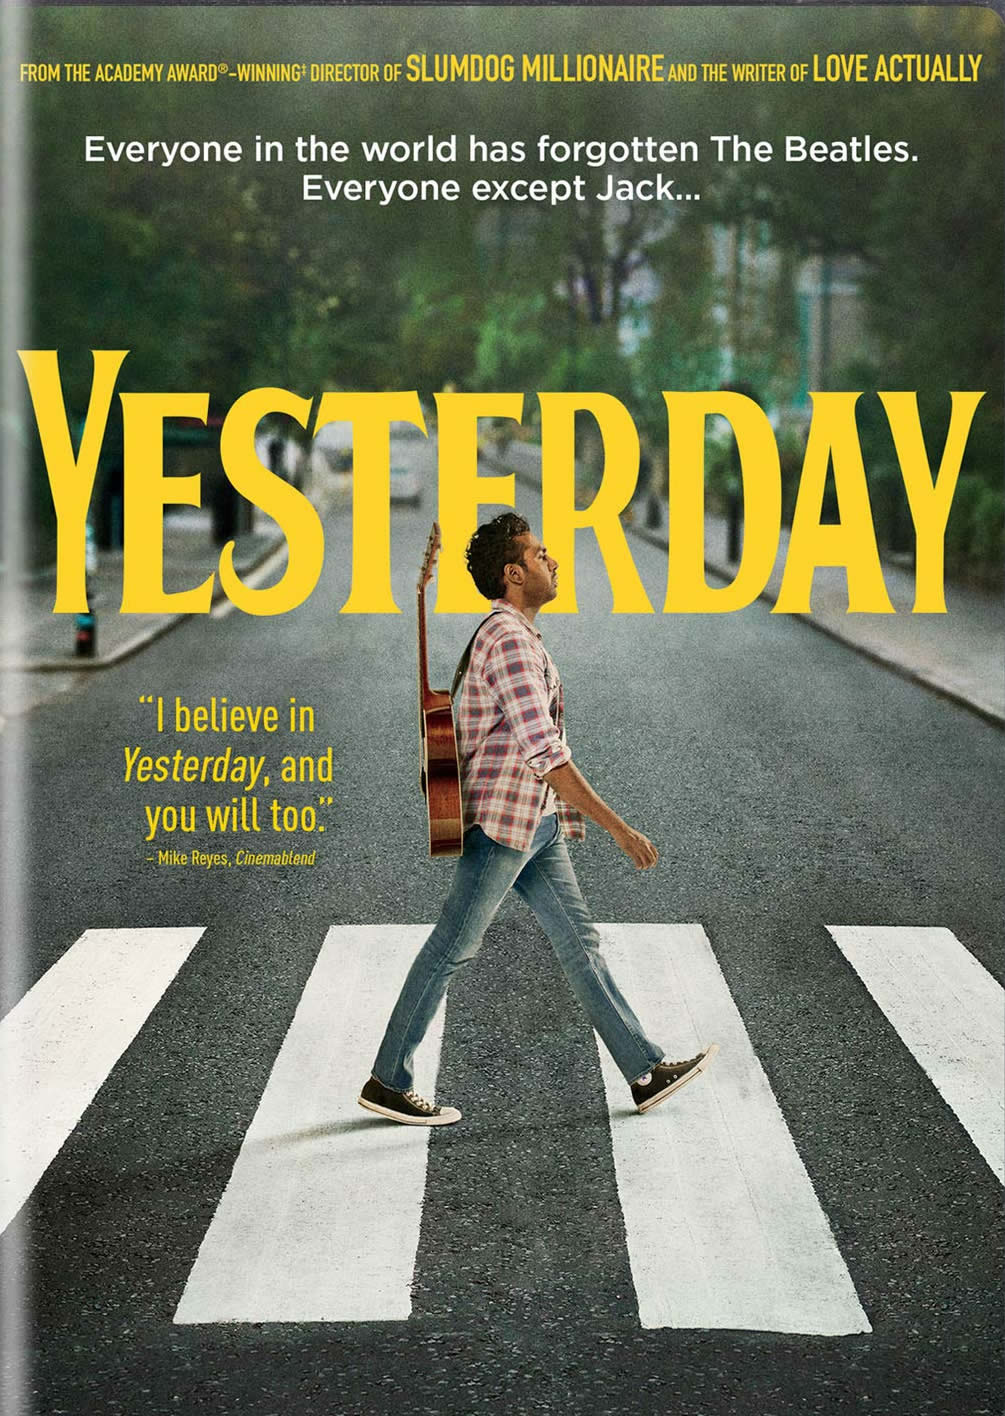 Yesterday DVD Cover-copyrighted image